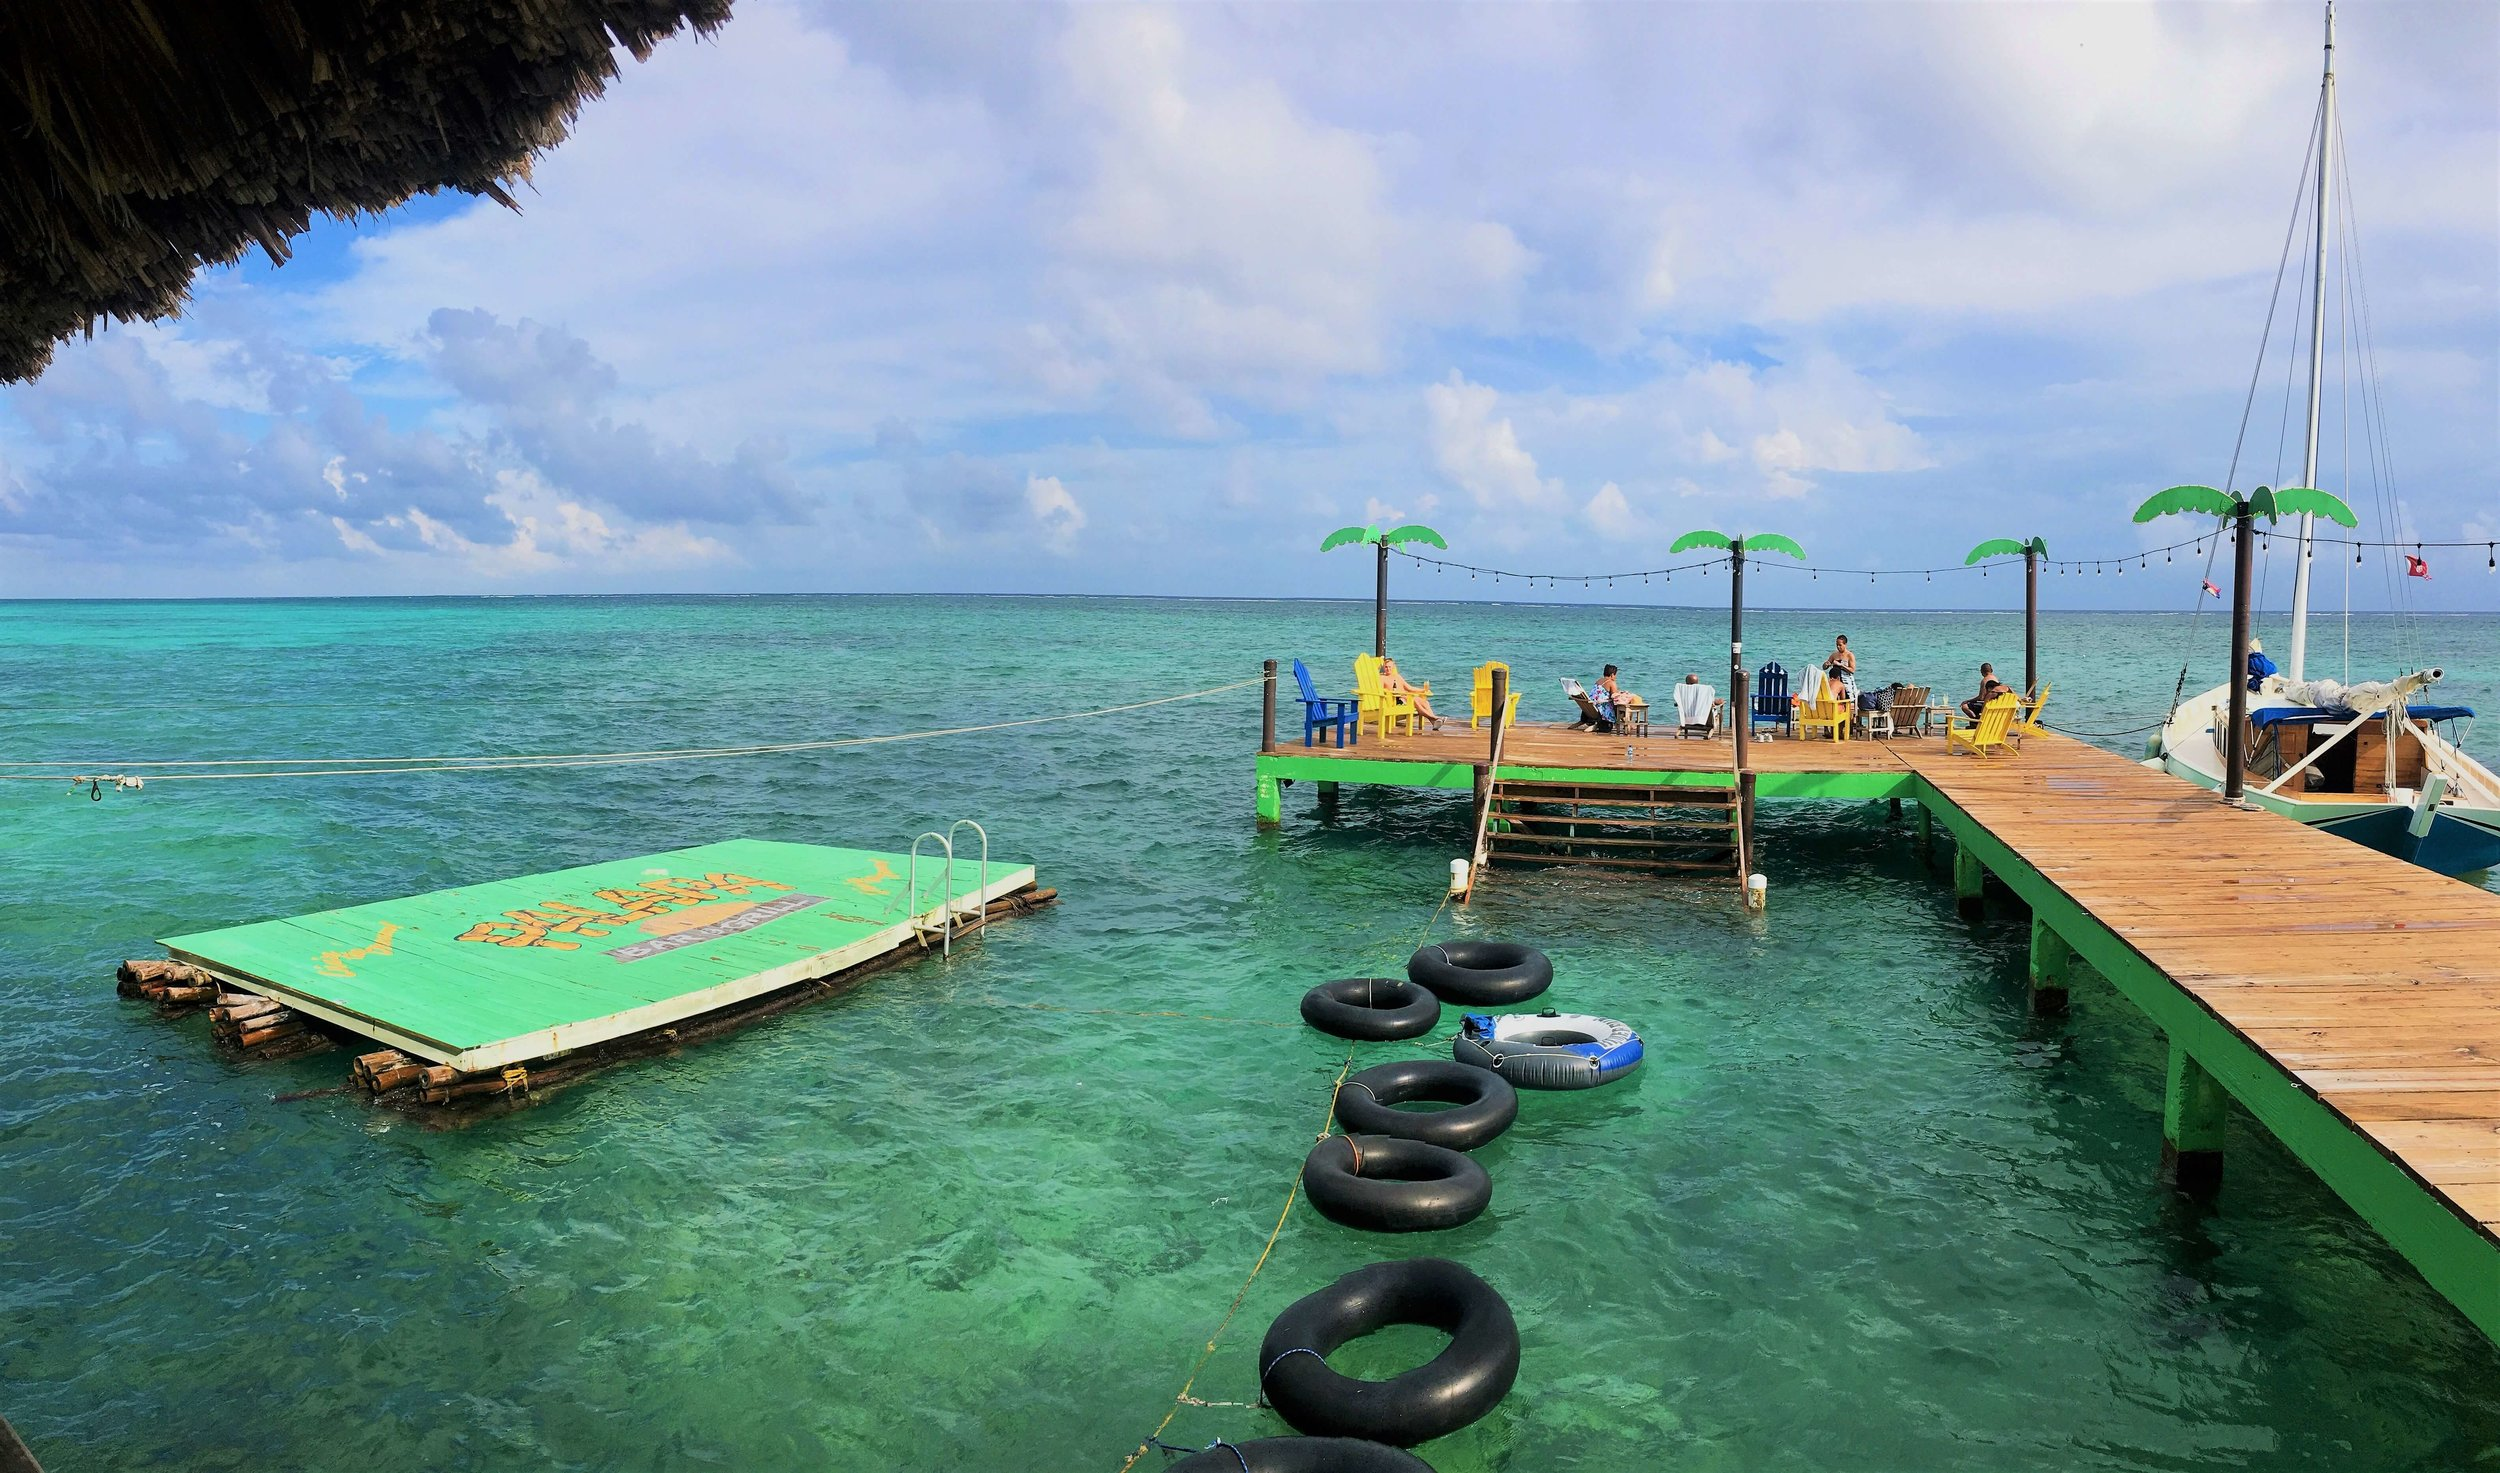 The inner tubes are ready for some big chillin' (San Pedro, Belize).